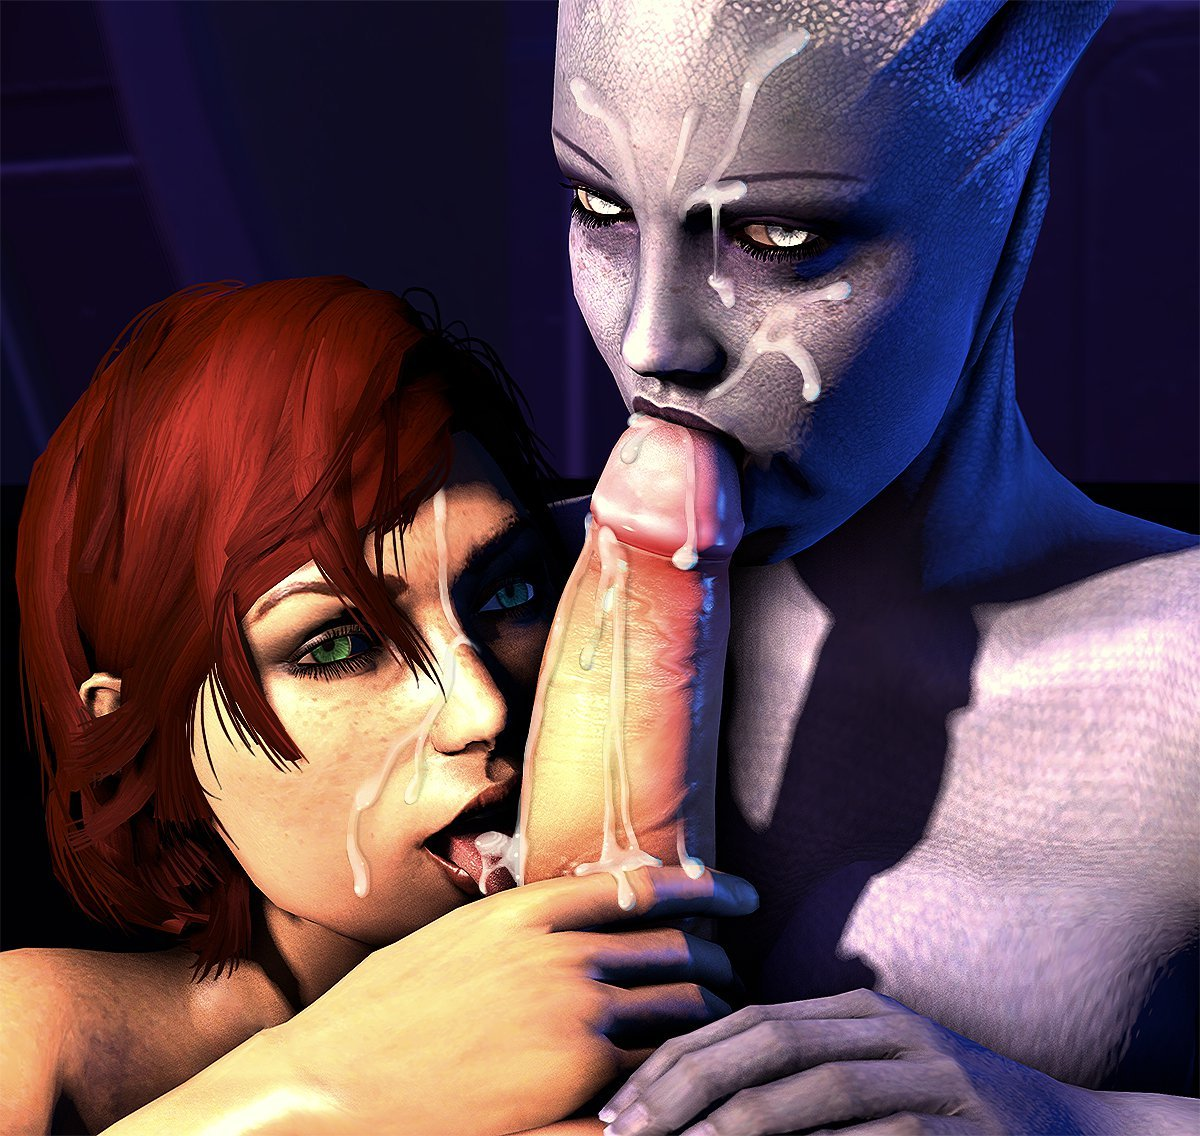 Mass effect pornpics exposed pictures